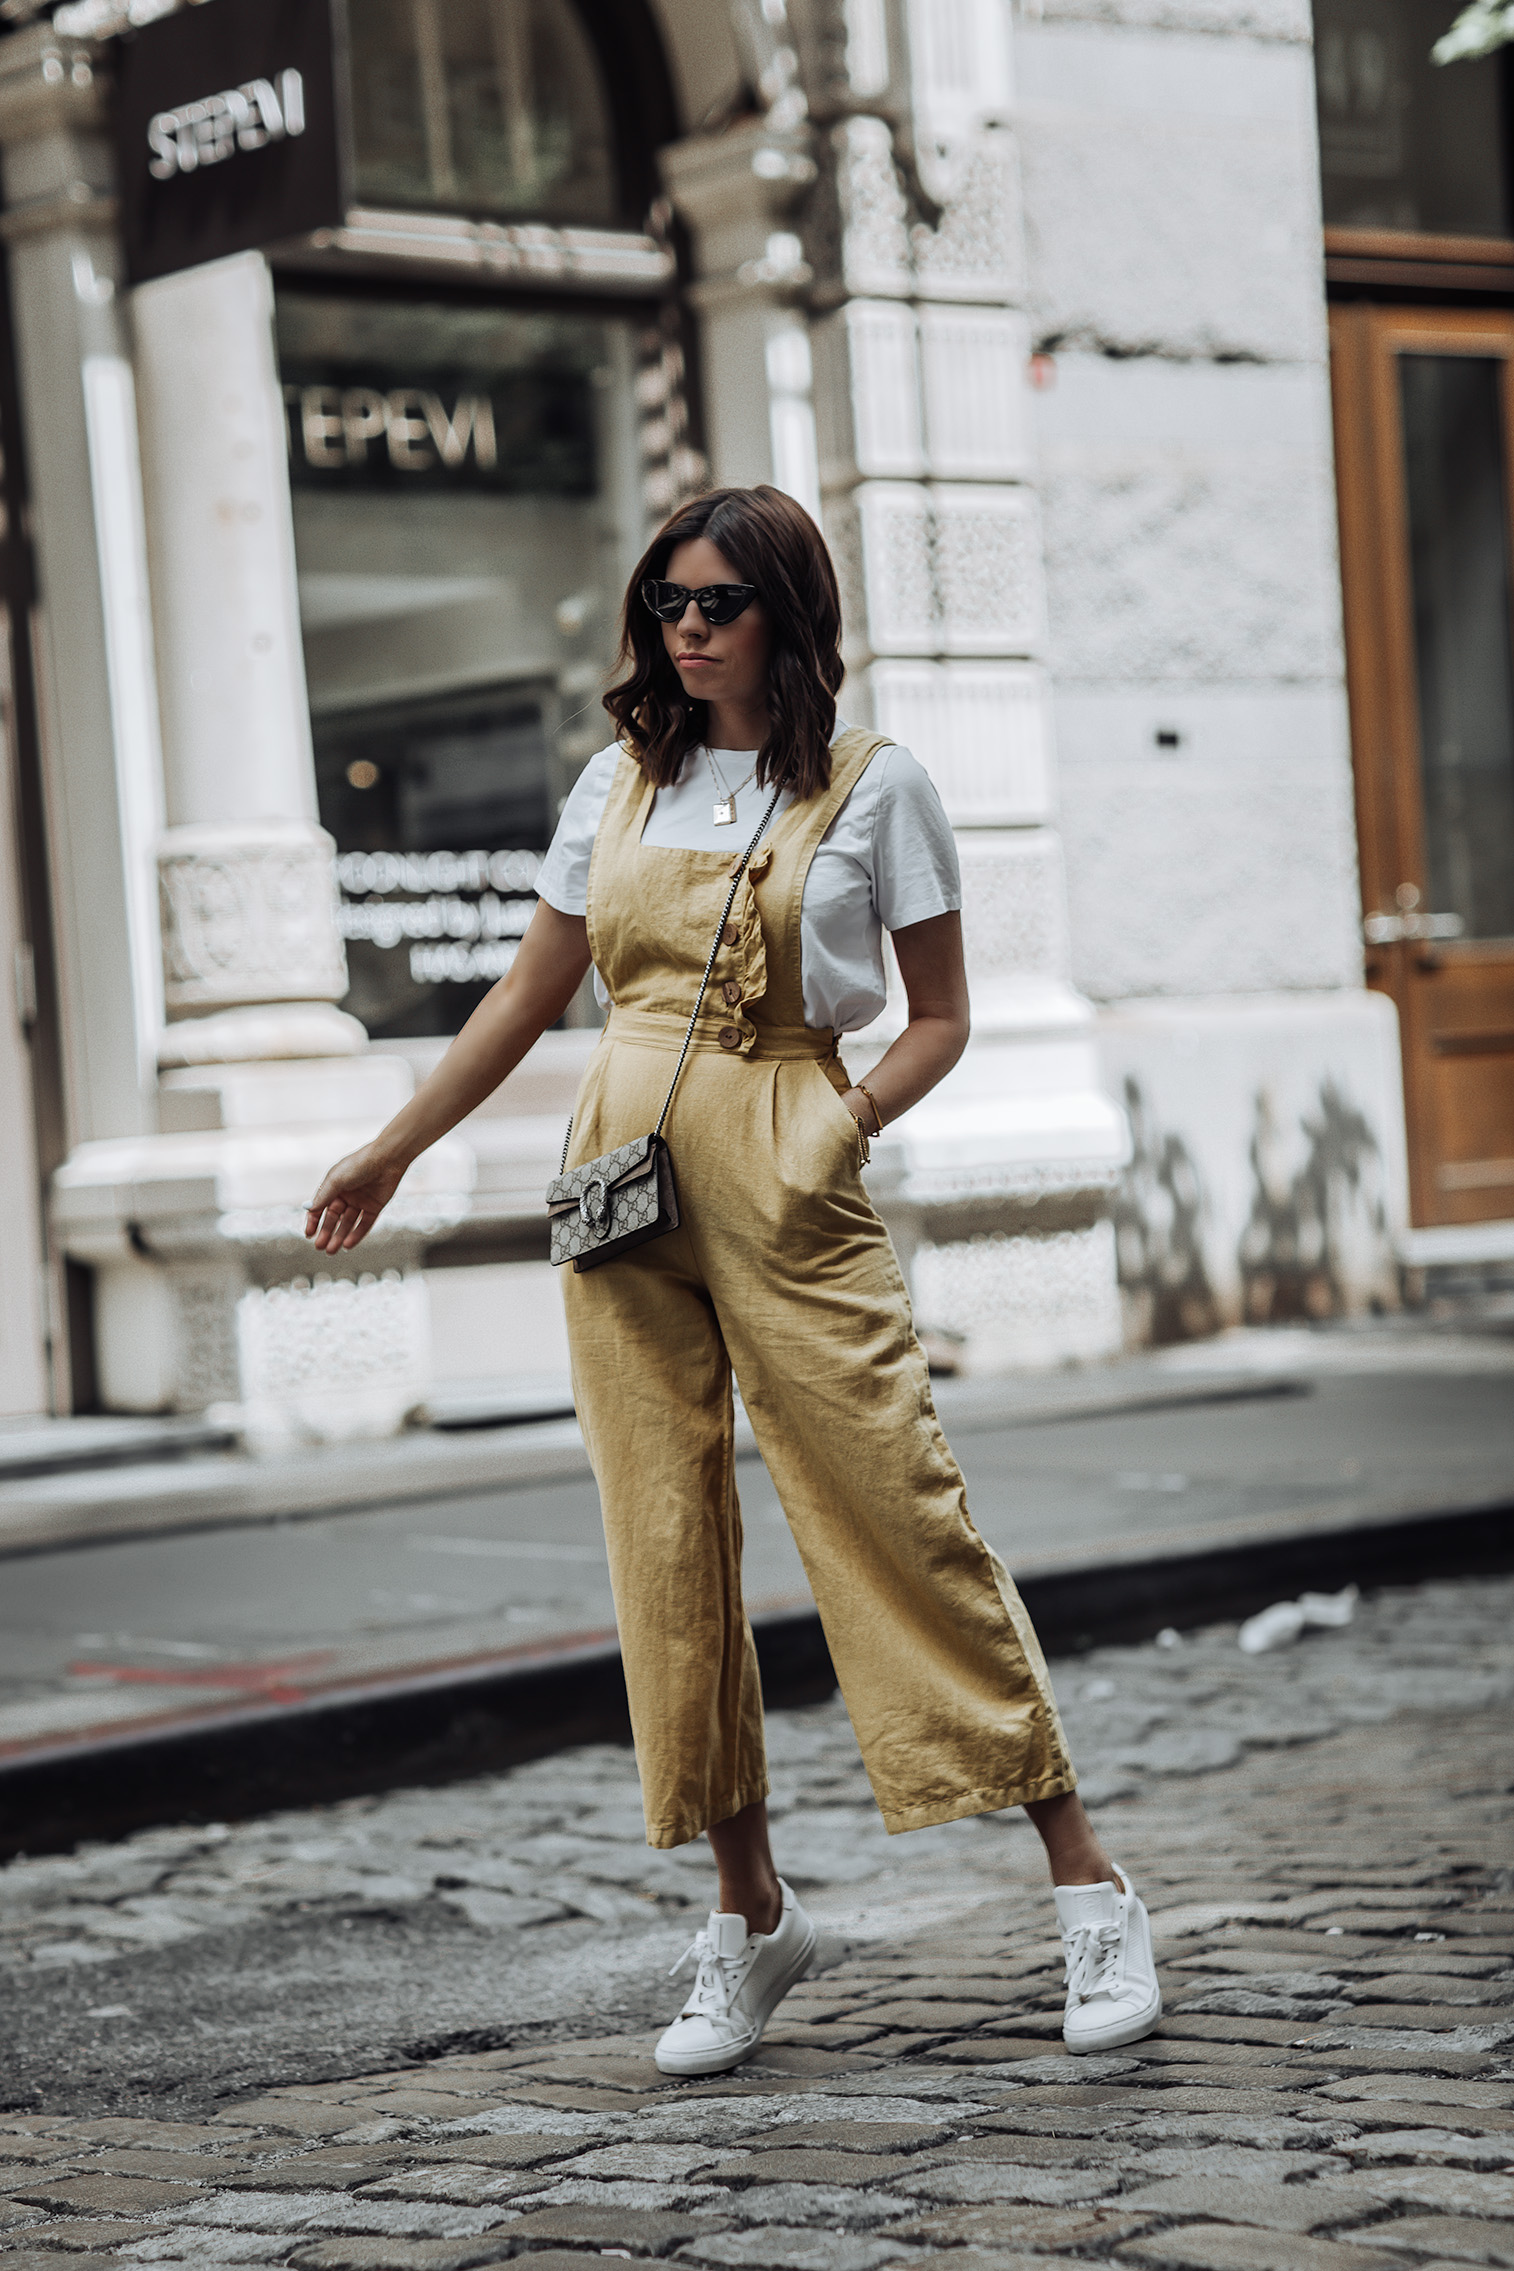 Yellow Jumpsuit (Zara, also love this) | Gucci Mini Bag | Necklaces (here, and here) | Sneakers | Monica V. Bracelets (here, & here)  #liketkit #gucci #streetstyle #zara